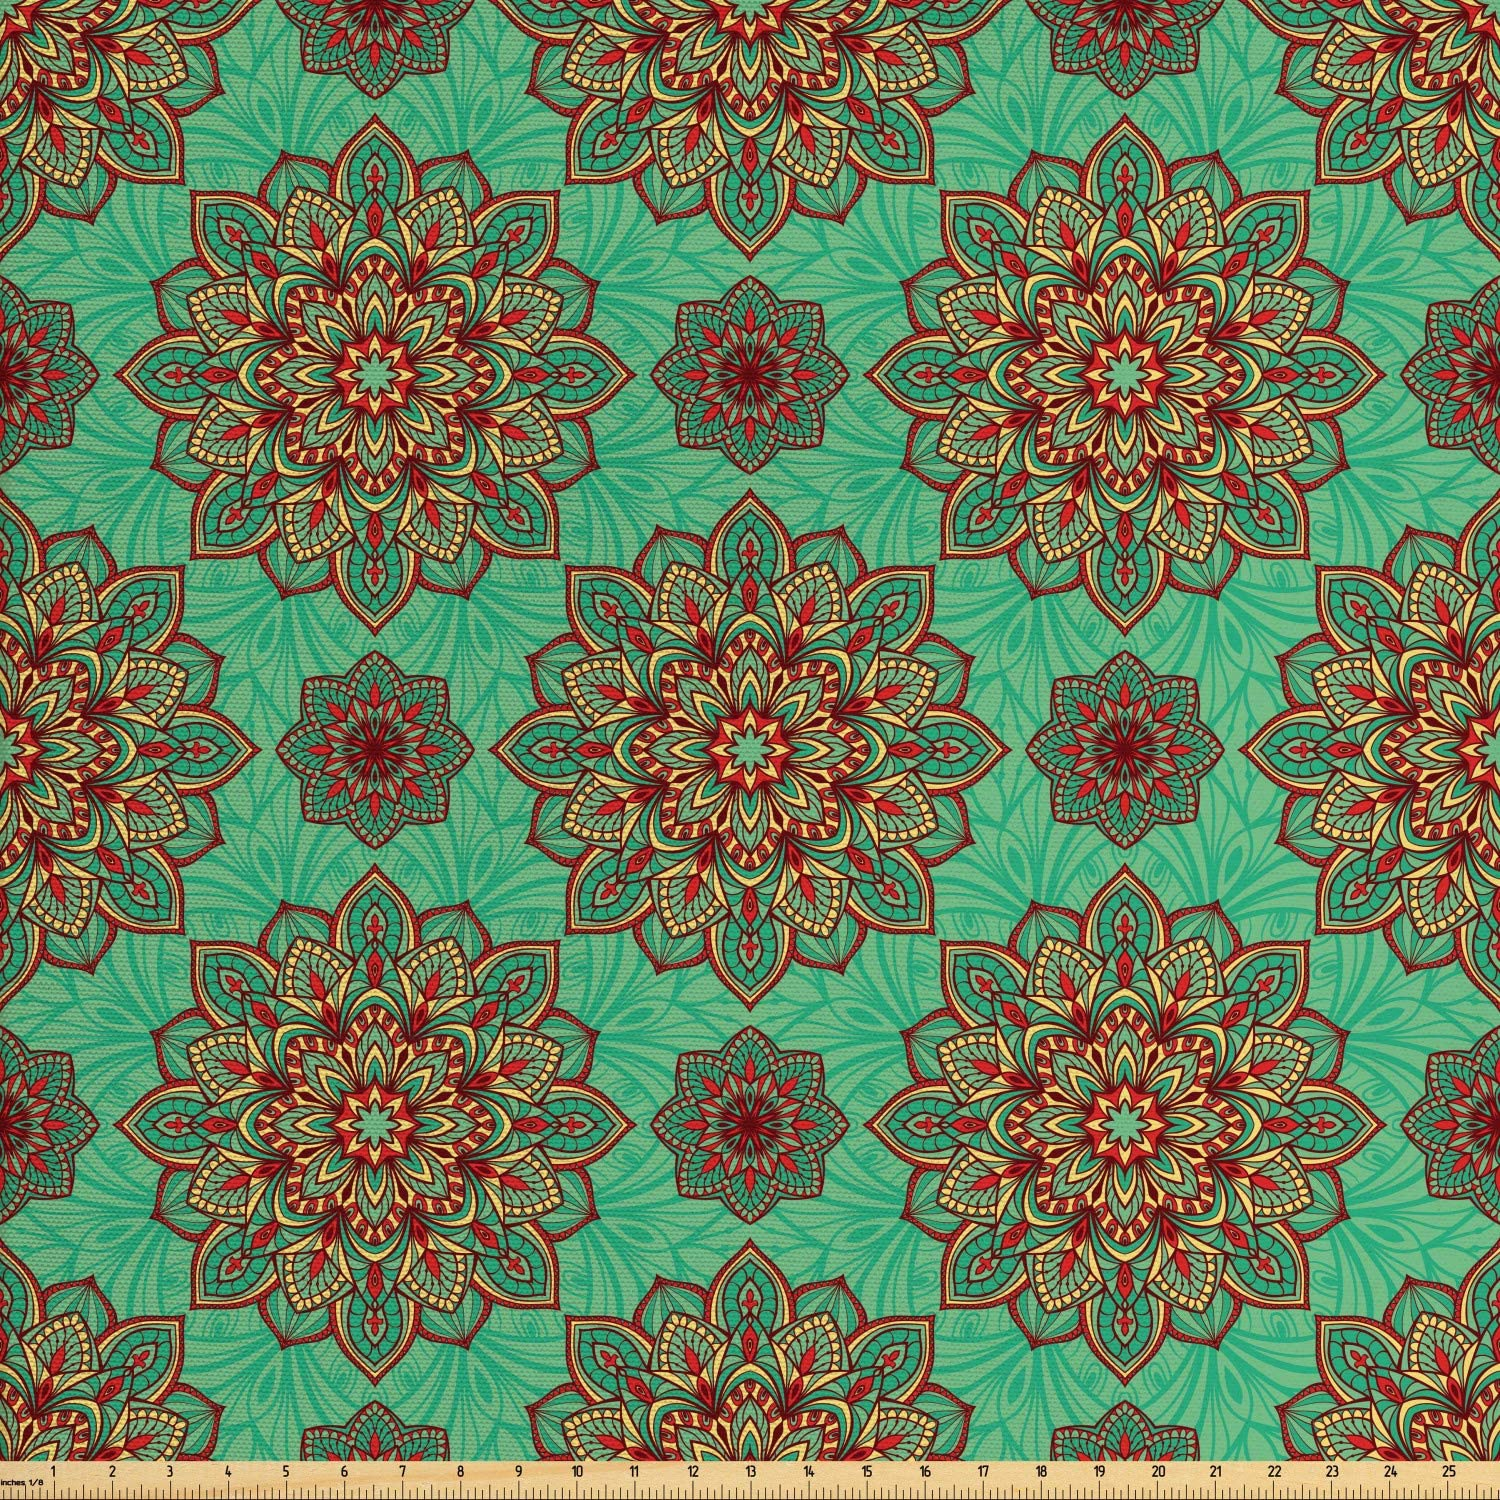 Ambesonne Turquoise Fabric by The Yard, Eastern Oriental Pattern of Mandala Traditional Geometric Art, Decorative Fabric for Upholstery and Home Accents, 1 Yard, Yellow Green